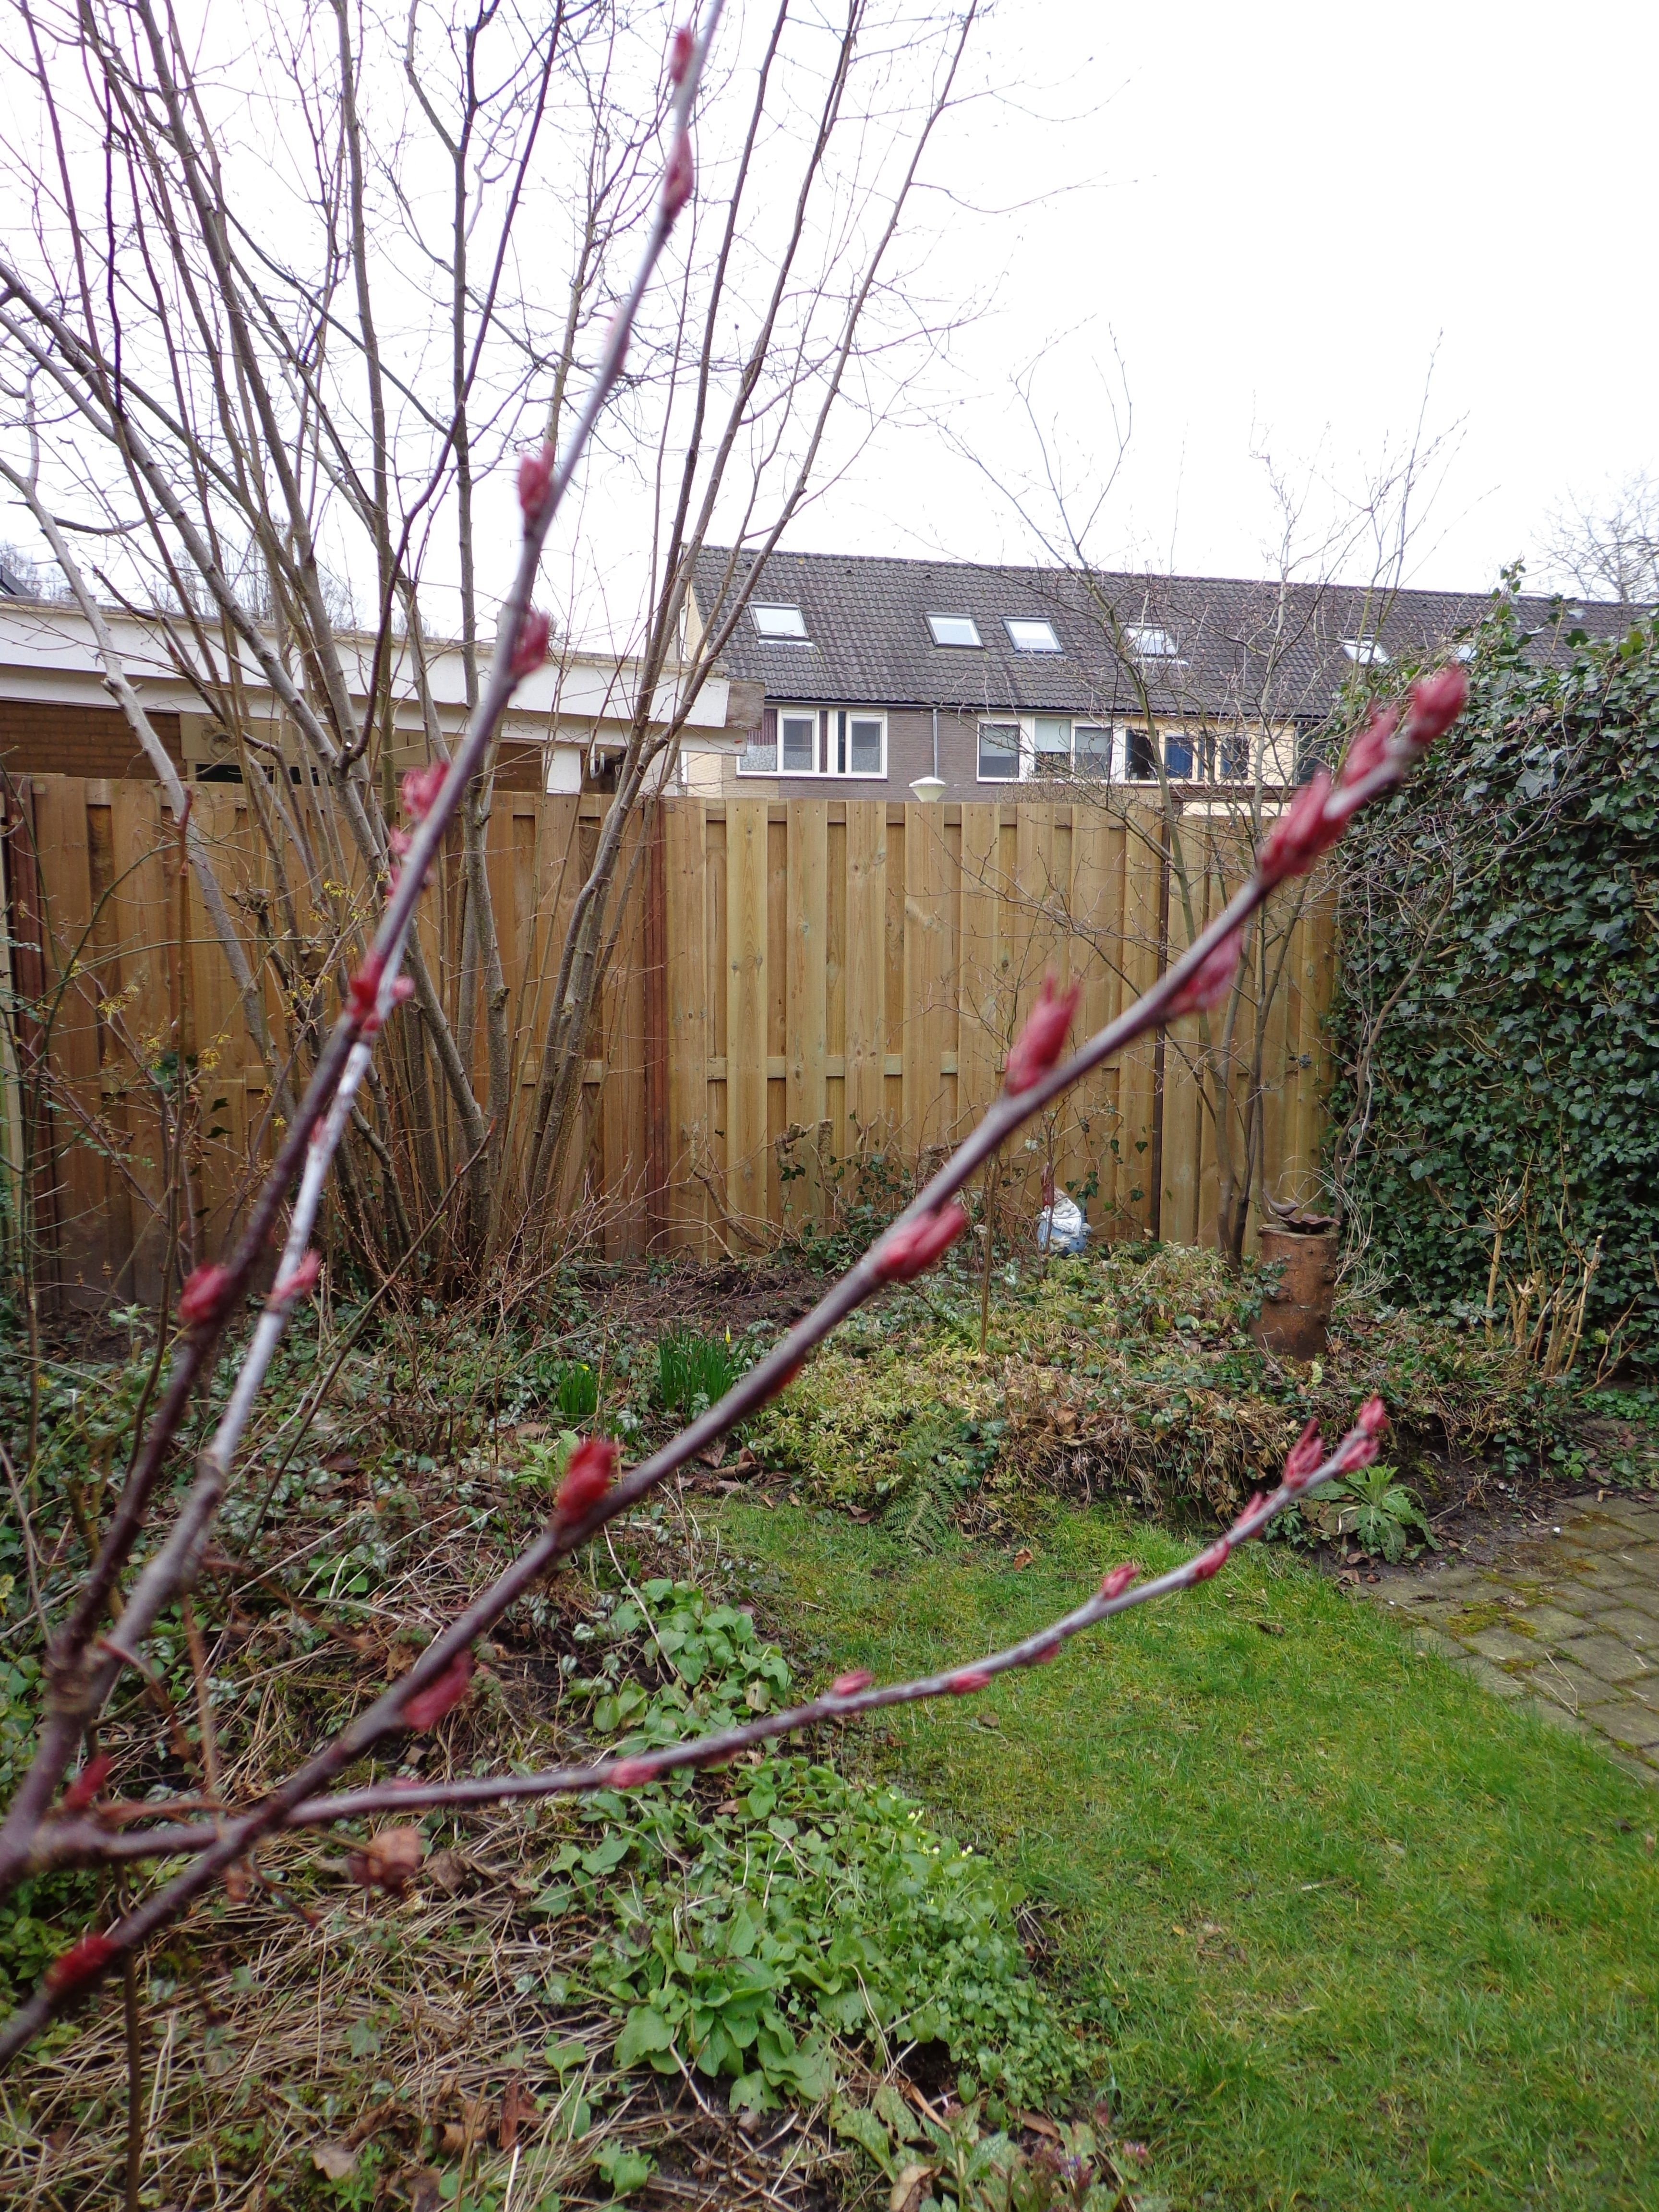 March 9th - Buds on the crabapple (Malus 'Liset')